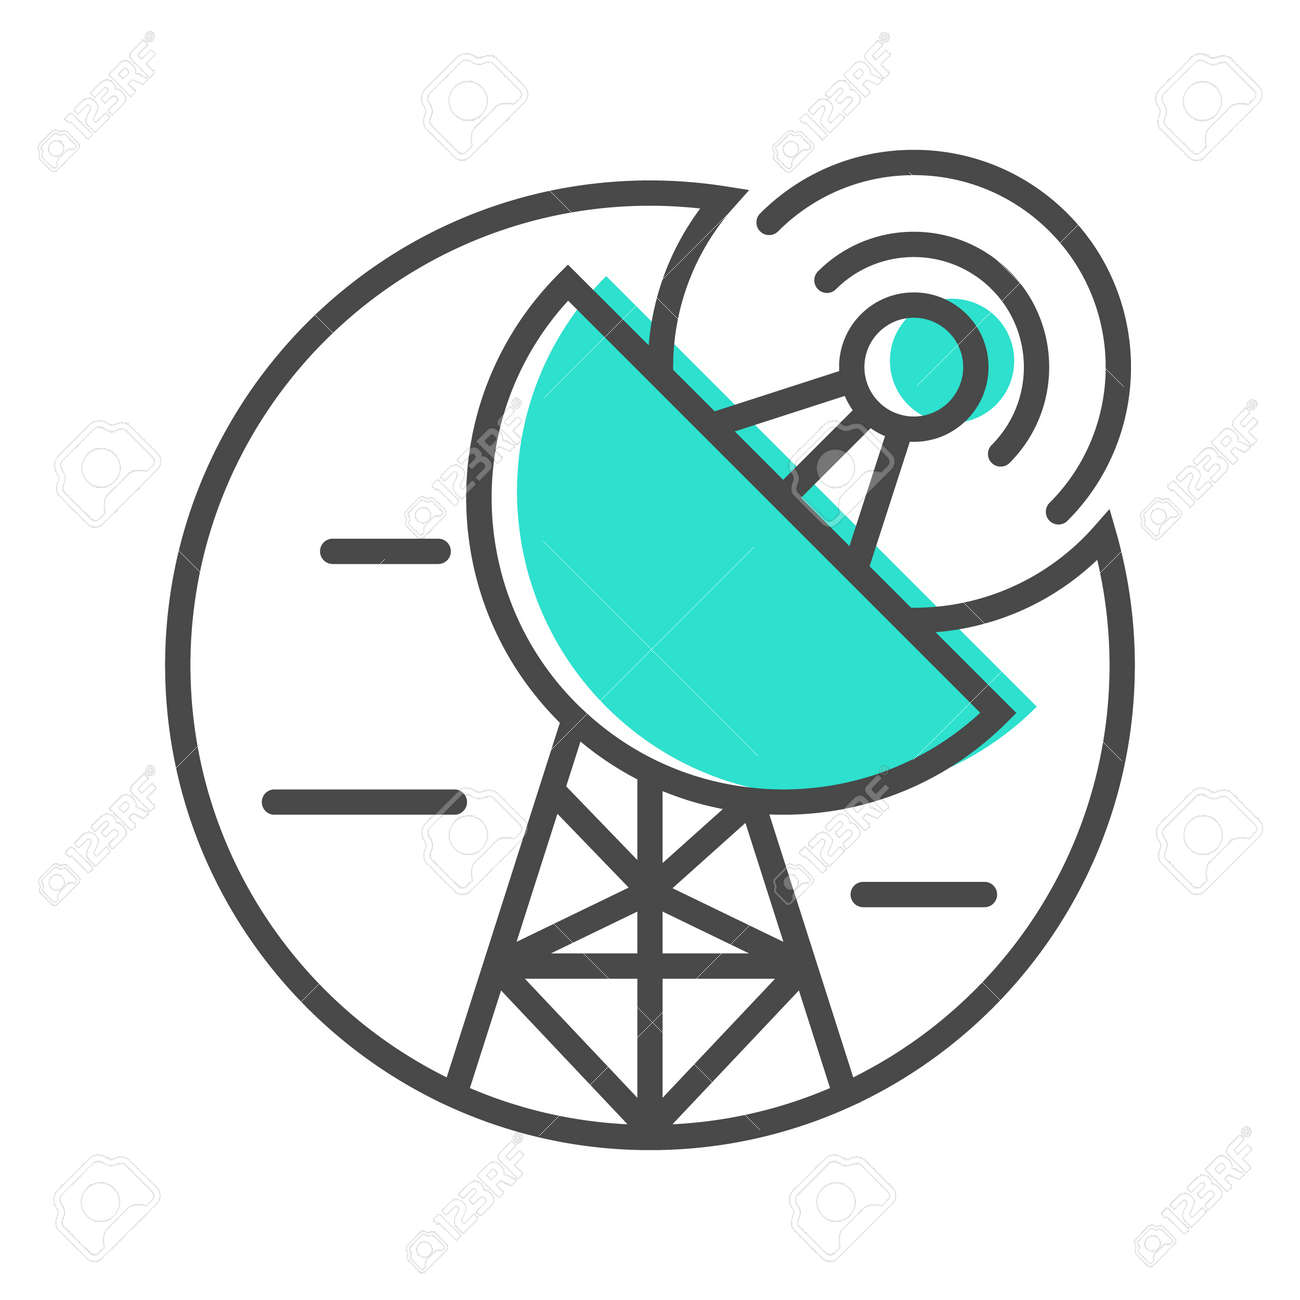 Data Stream Linear Icon With Satellite Dish Sign. Financial Data Analysis,  Business Analytics Pictogram